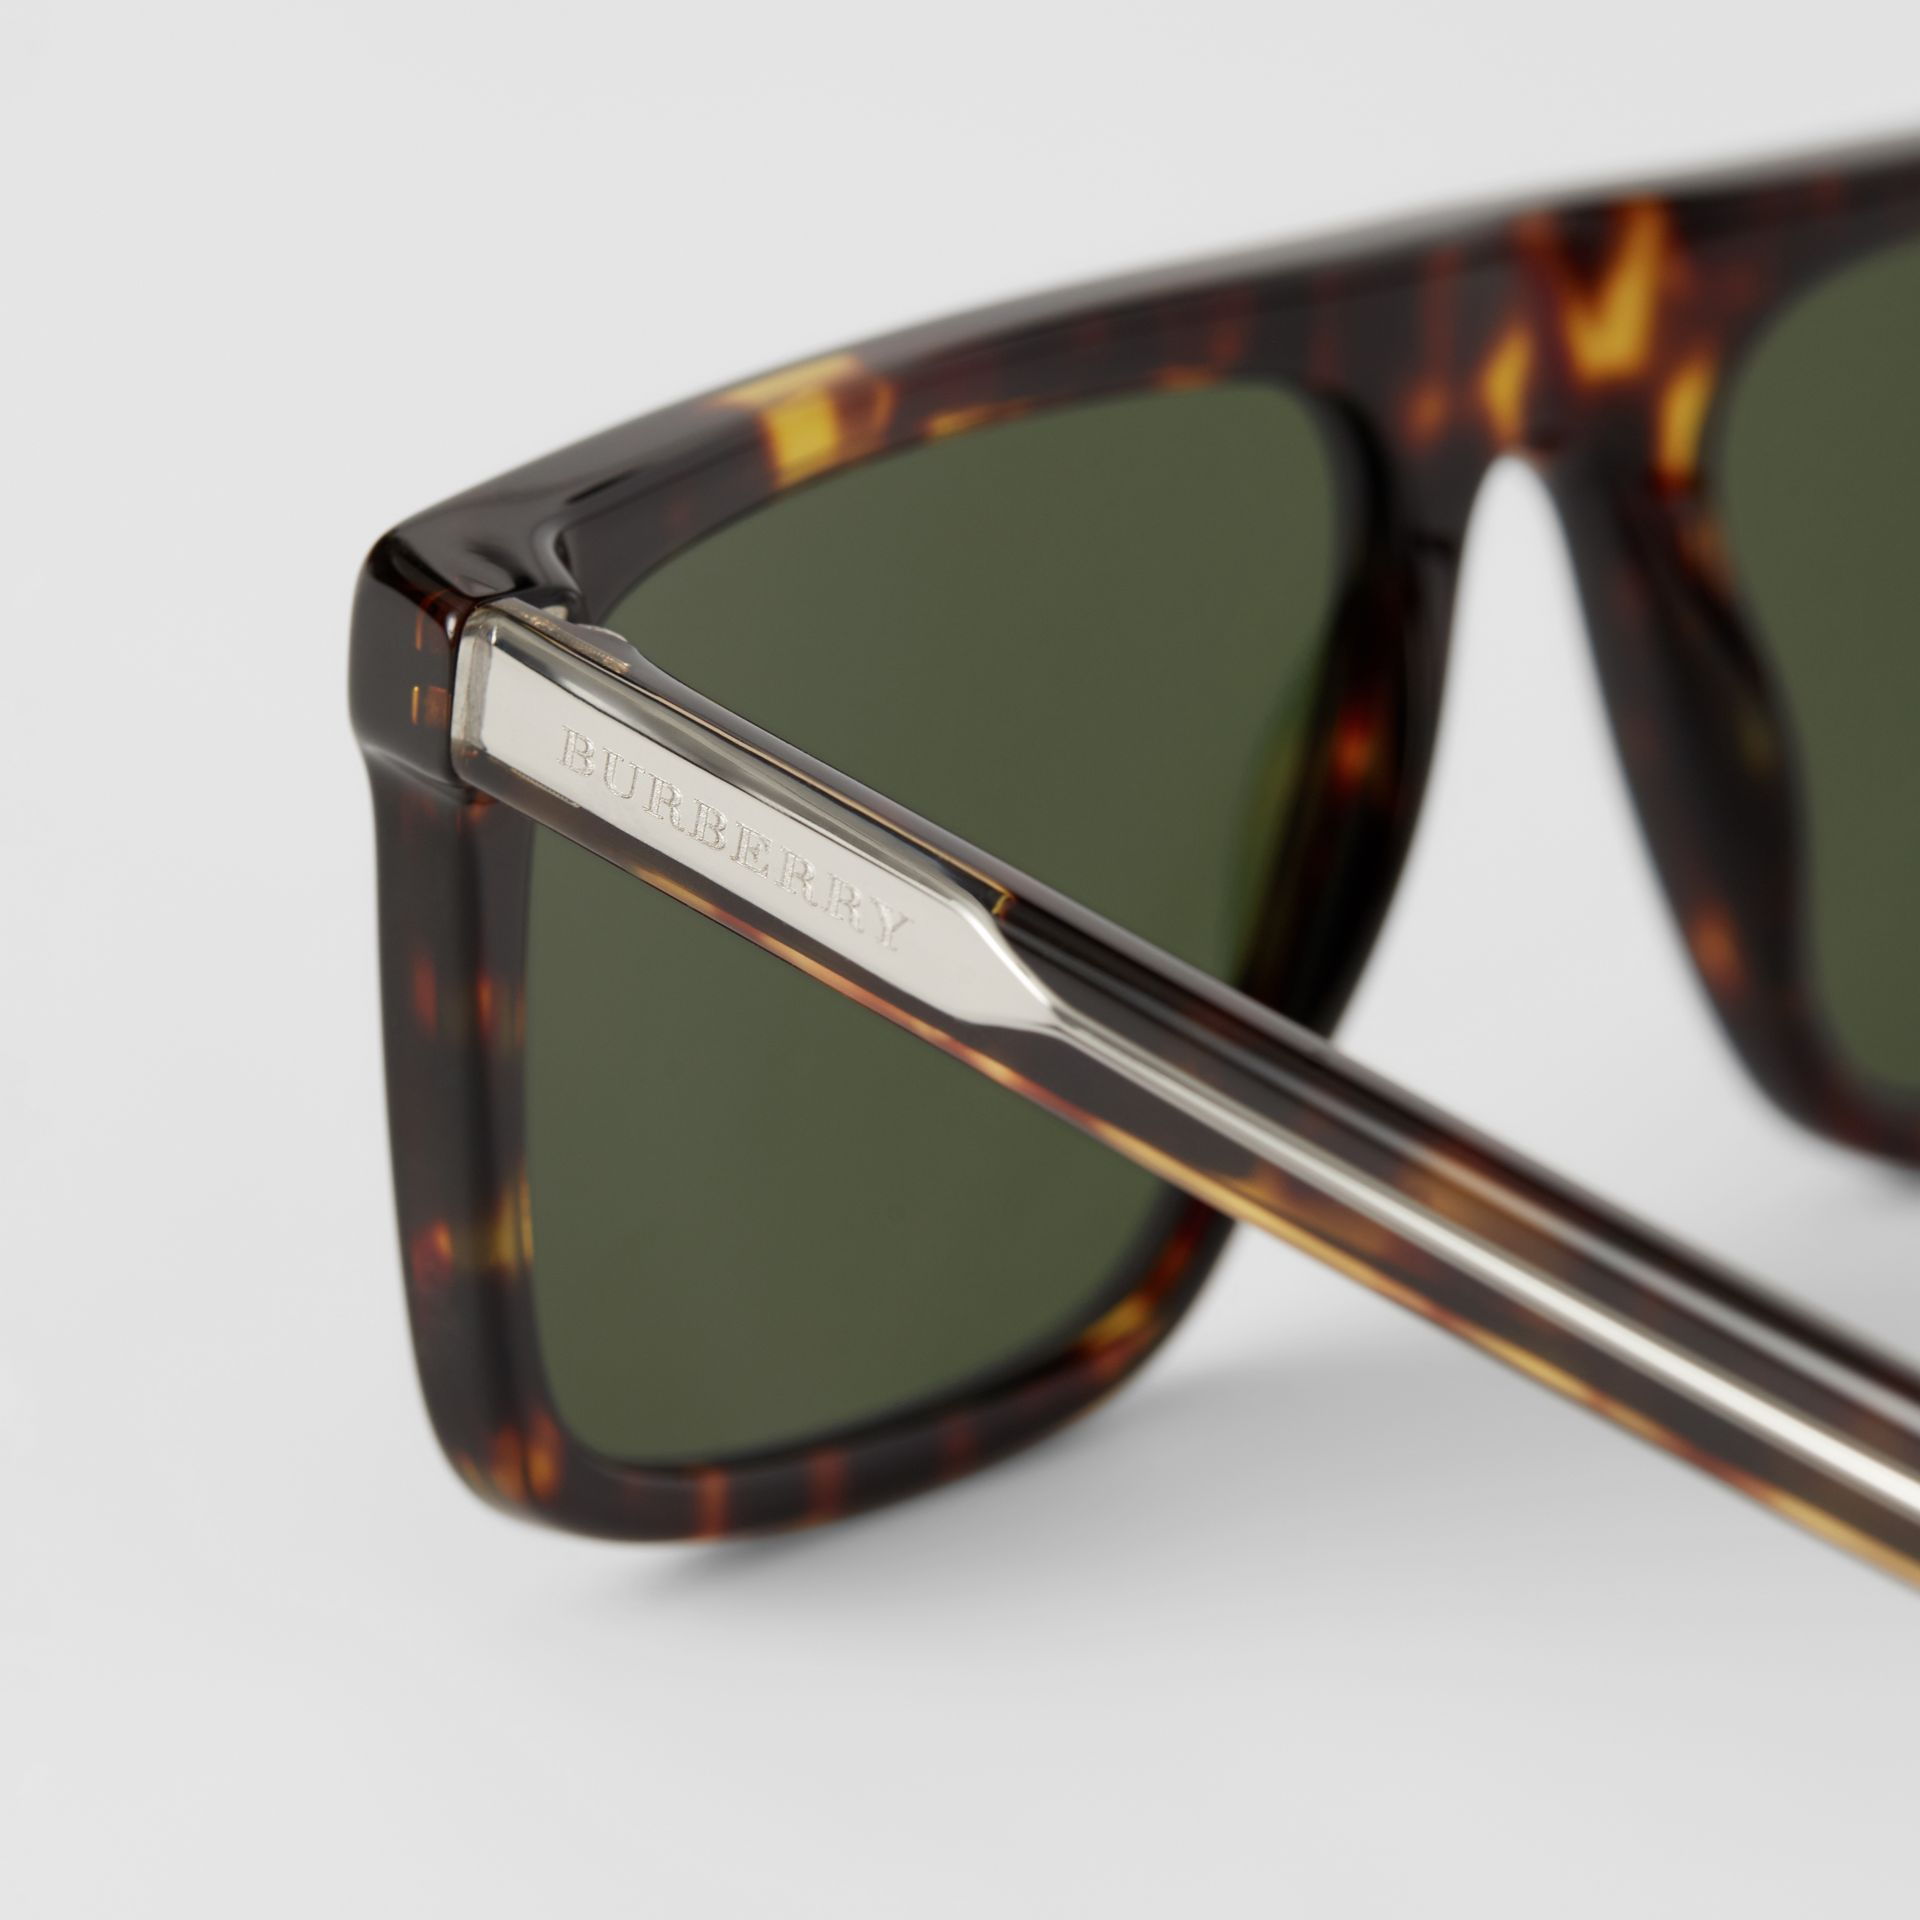 Straight-brow Sunglasses in Tortoise Shell - Men | Burberry United Kingdom - gallery image 1